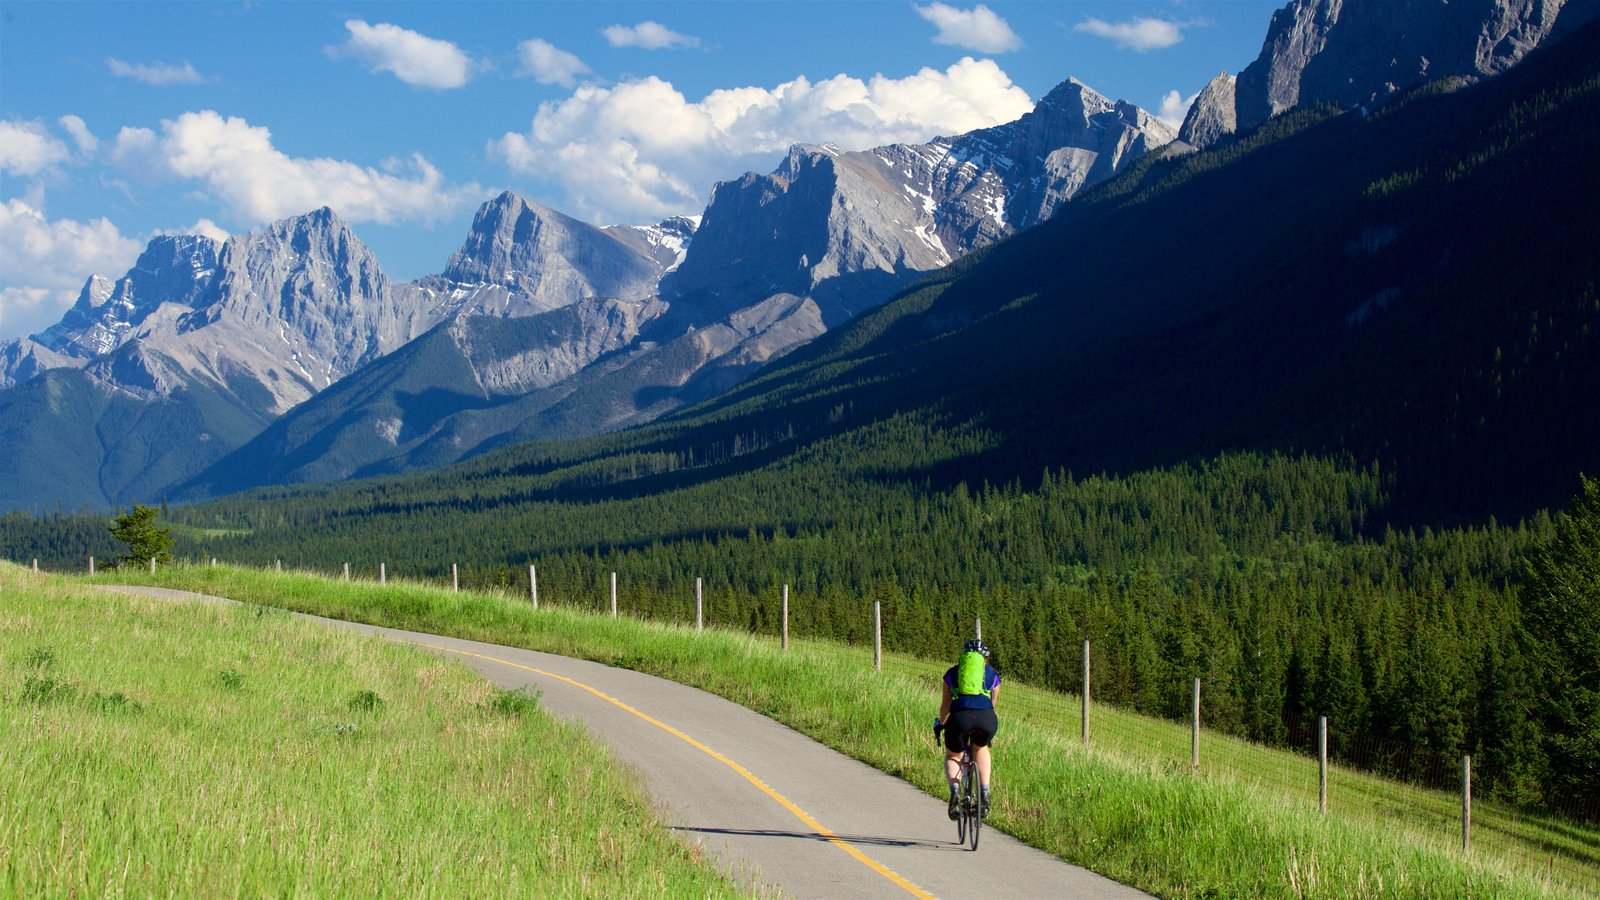 Canadian Rockies which includes landscape views, road cycling and mountains